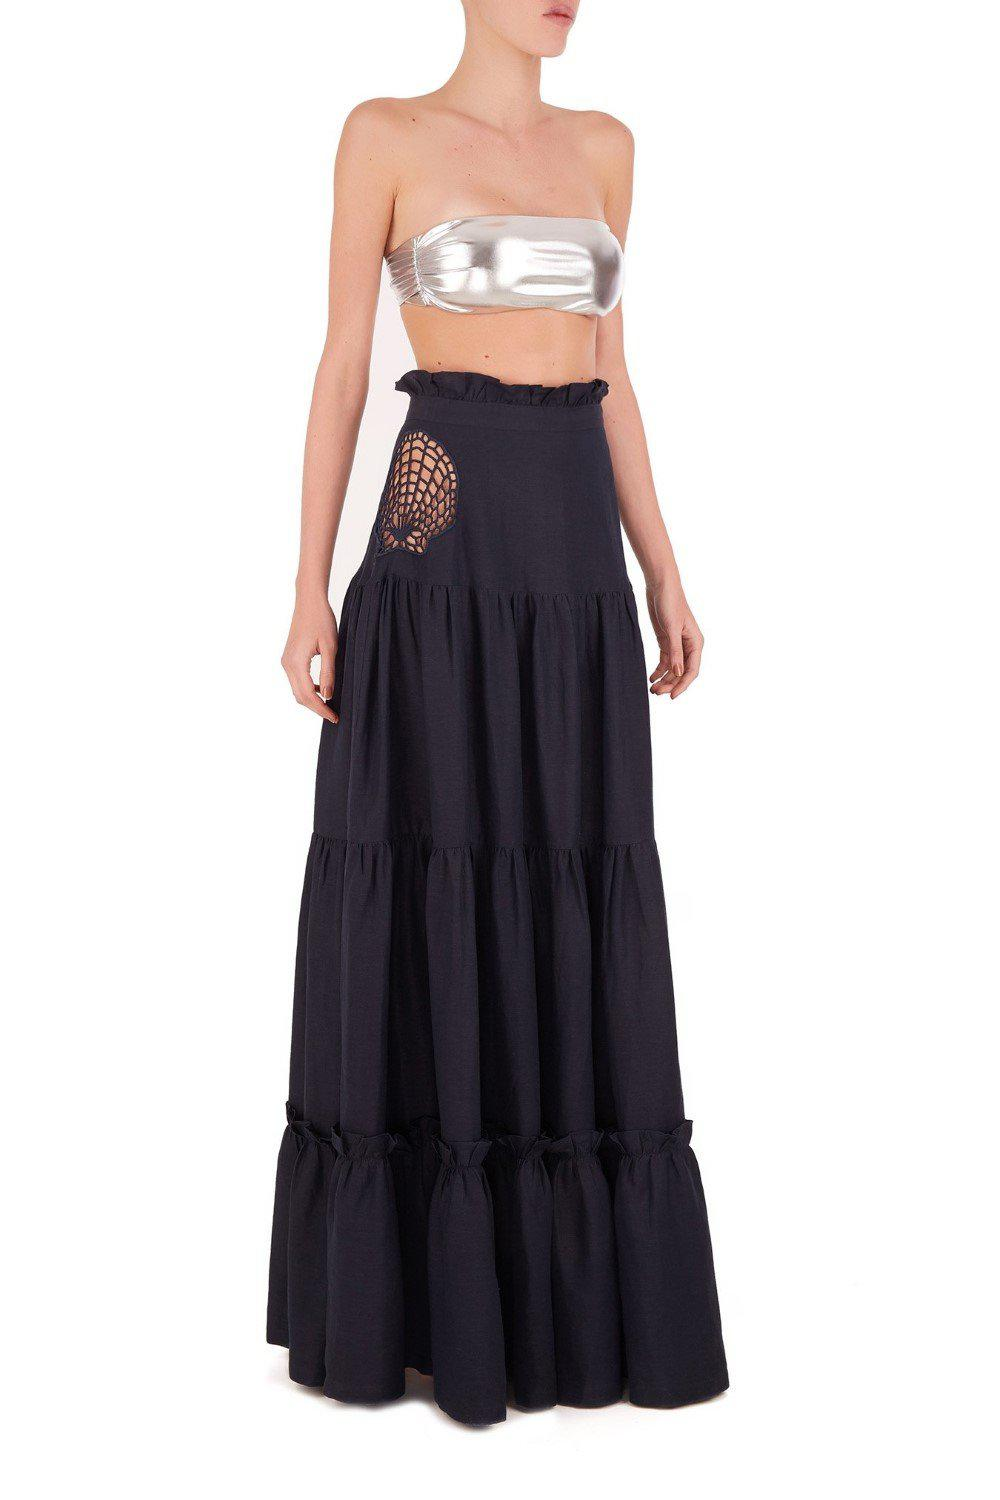 Marine Long Skirt With Seashell Embroidery